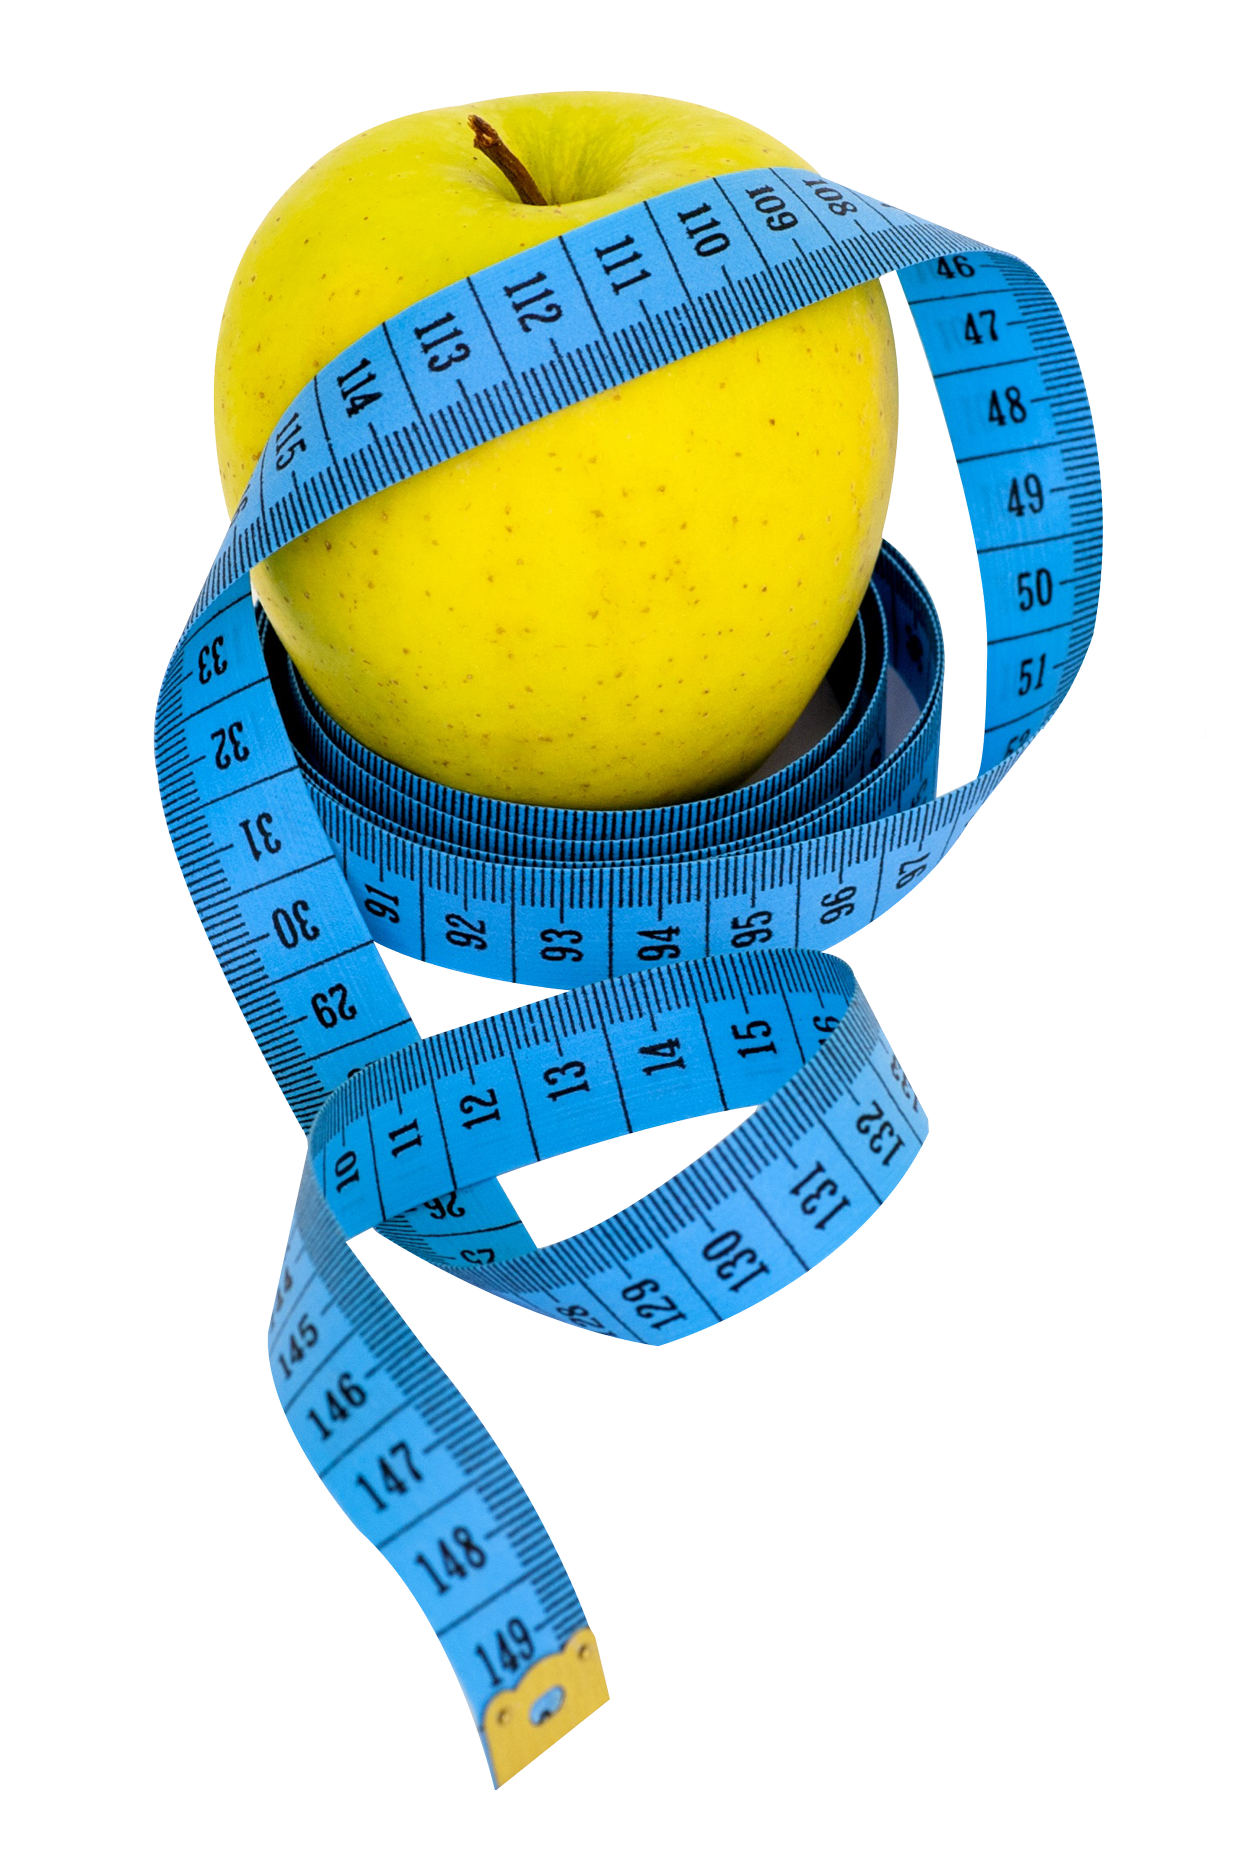 Apple with tape measure clipart picture royalty free download Apple Measure Tape PNG Image - PurePNG | Free transparent CC0 PNG ... picture royalty free download